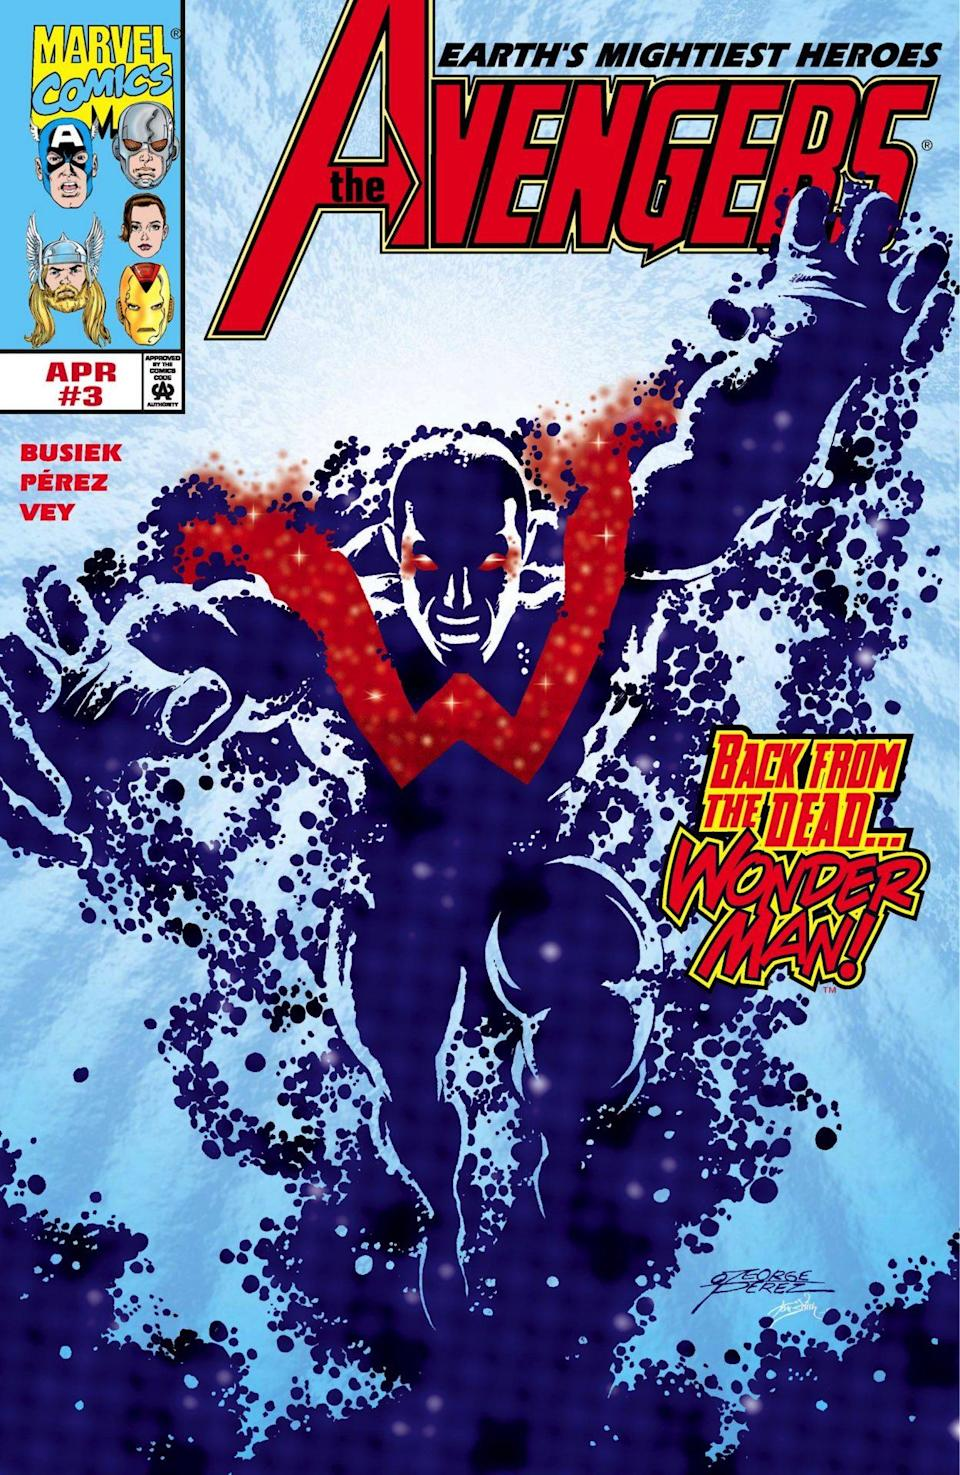 Wonder Man charging the fourth wall on the cover of an Avengers comic.